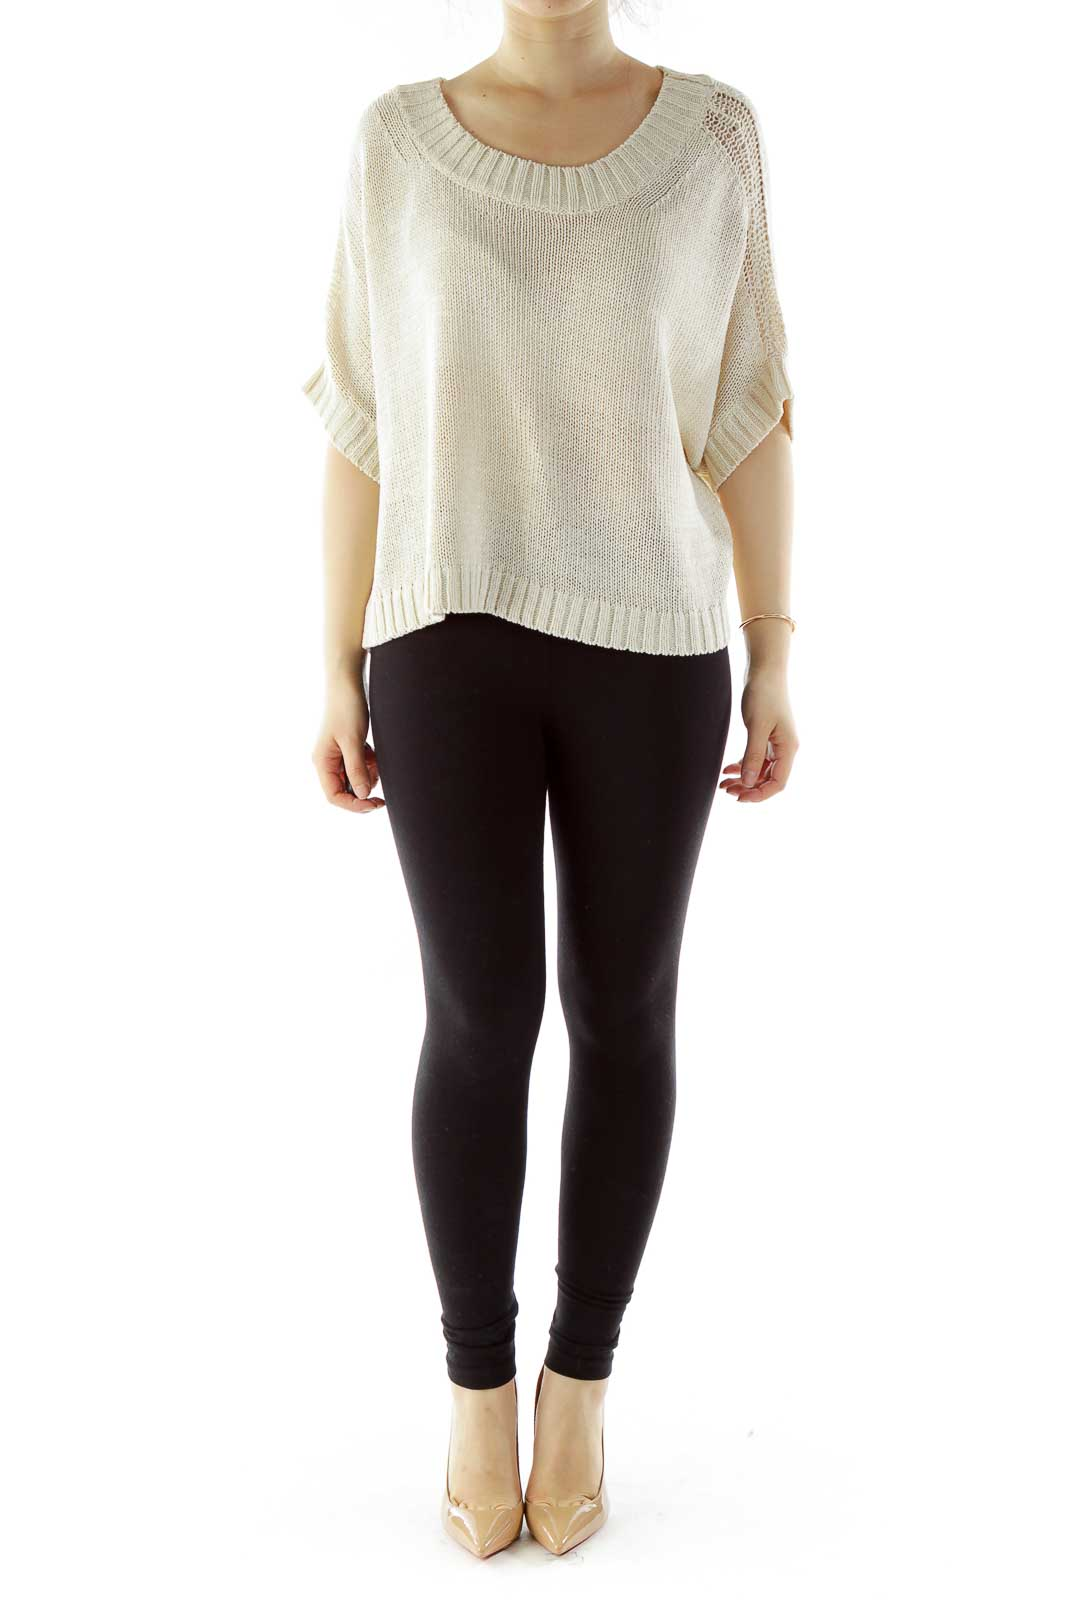 Cream Oversized Knit Top